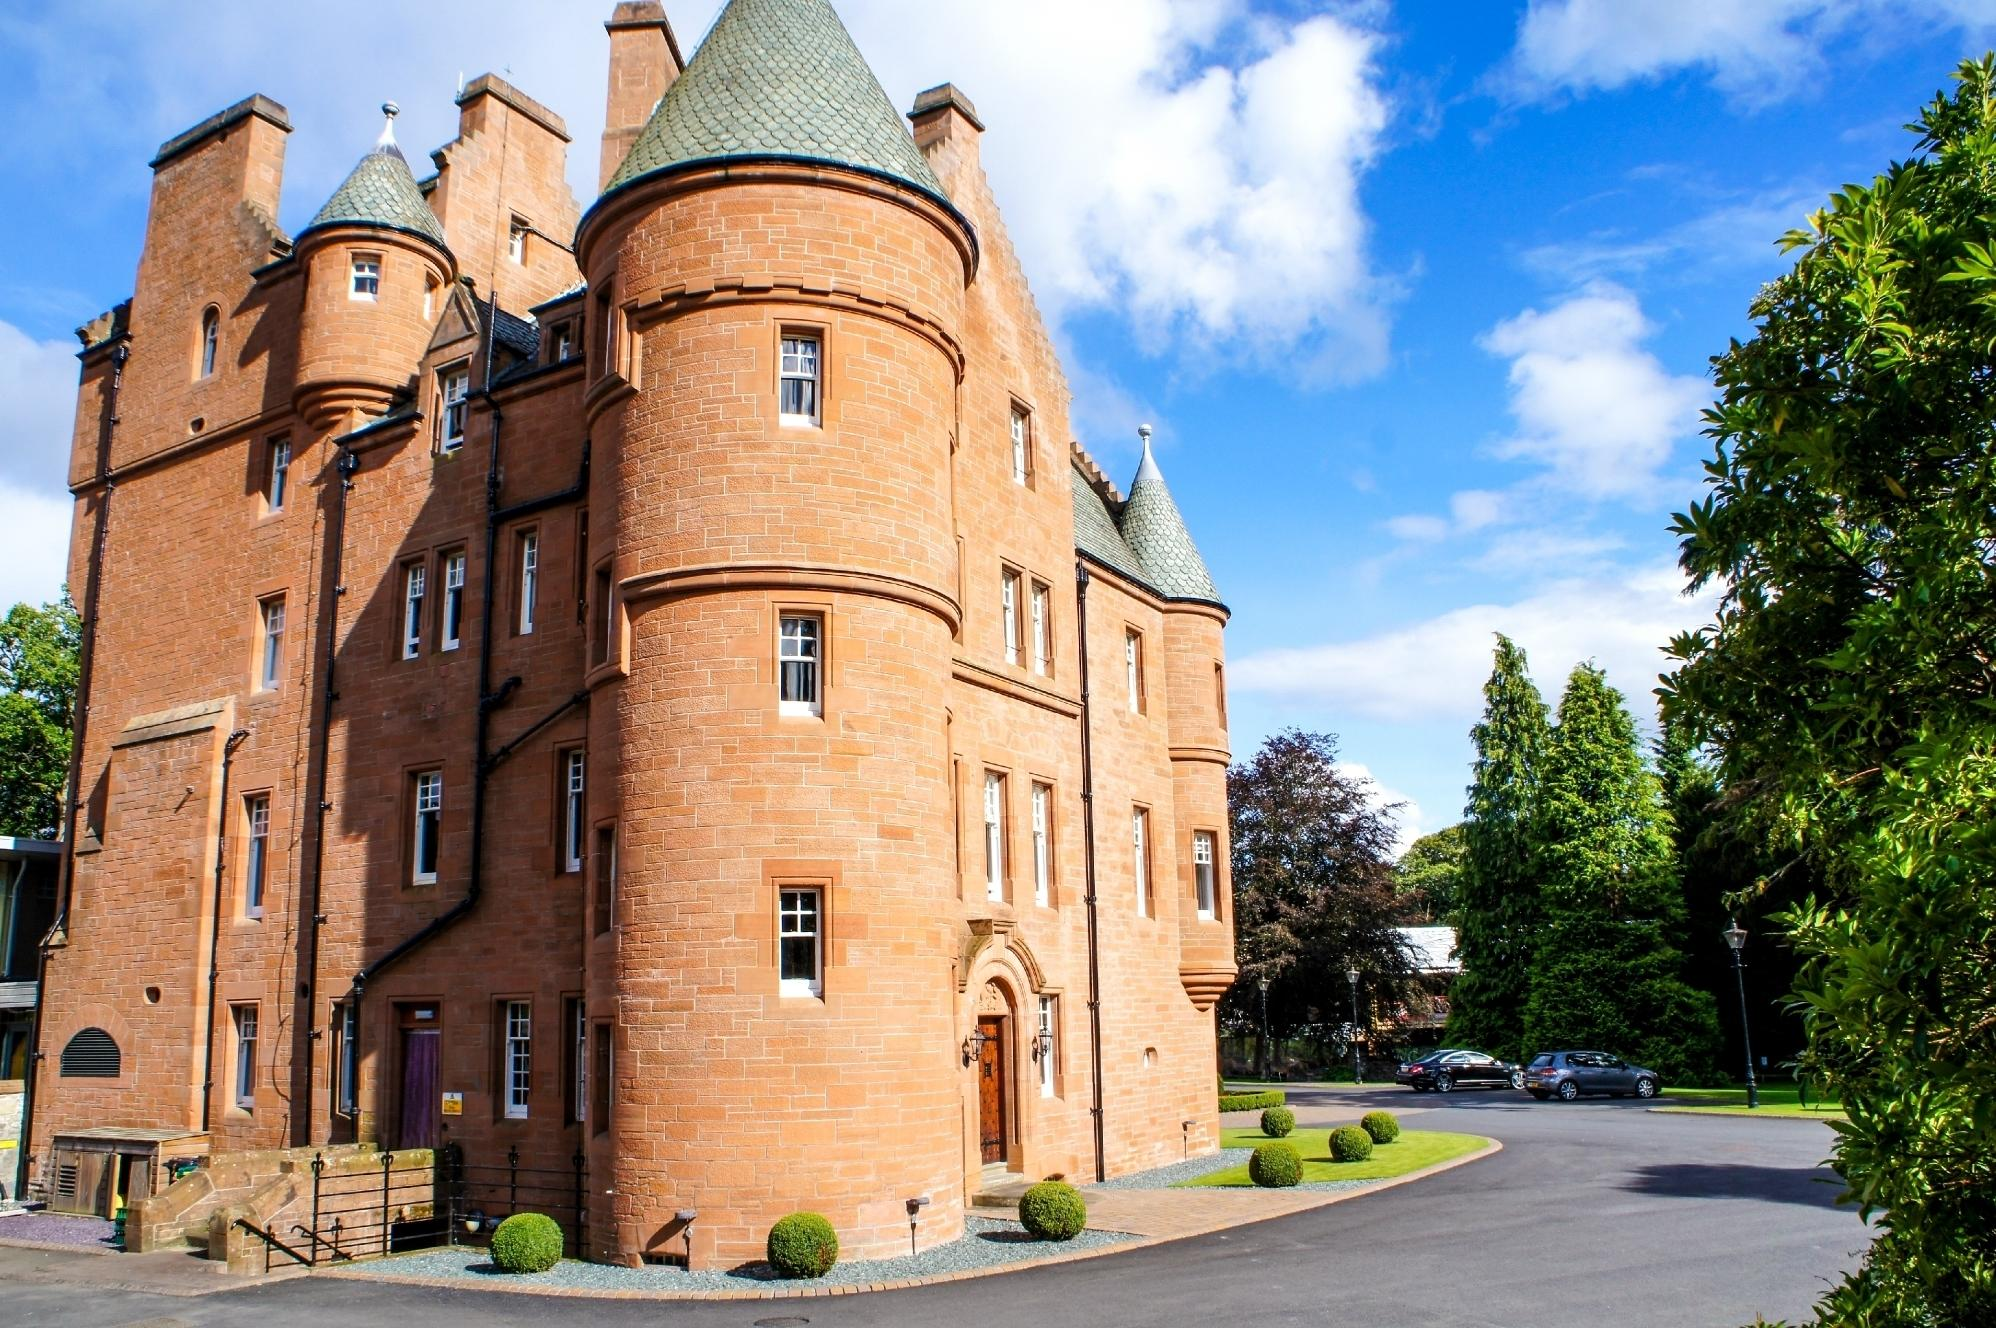 "<a href=""http://www.fonabcastlehotel.com/"" target=""_blank"">Fonab Castle Hotel</a> can be found on the banks of Loch Faskally in the heart of Perthshire. The castle, which still retains many of its original features, is now a 26 bedroom hotel and has been voted the best castle-hotel in Europe by Tripadvisor reviewers."